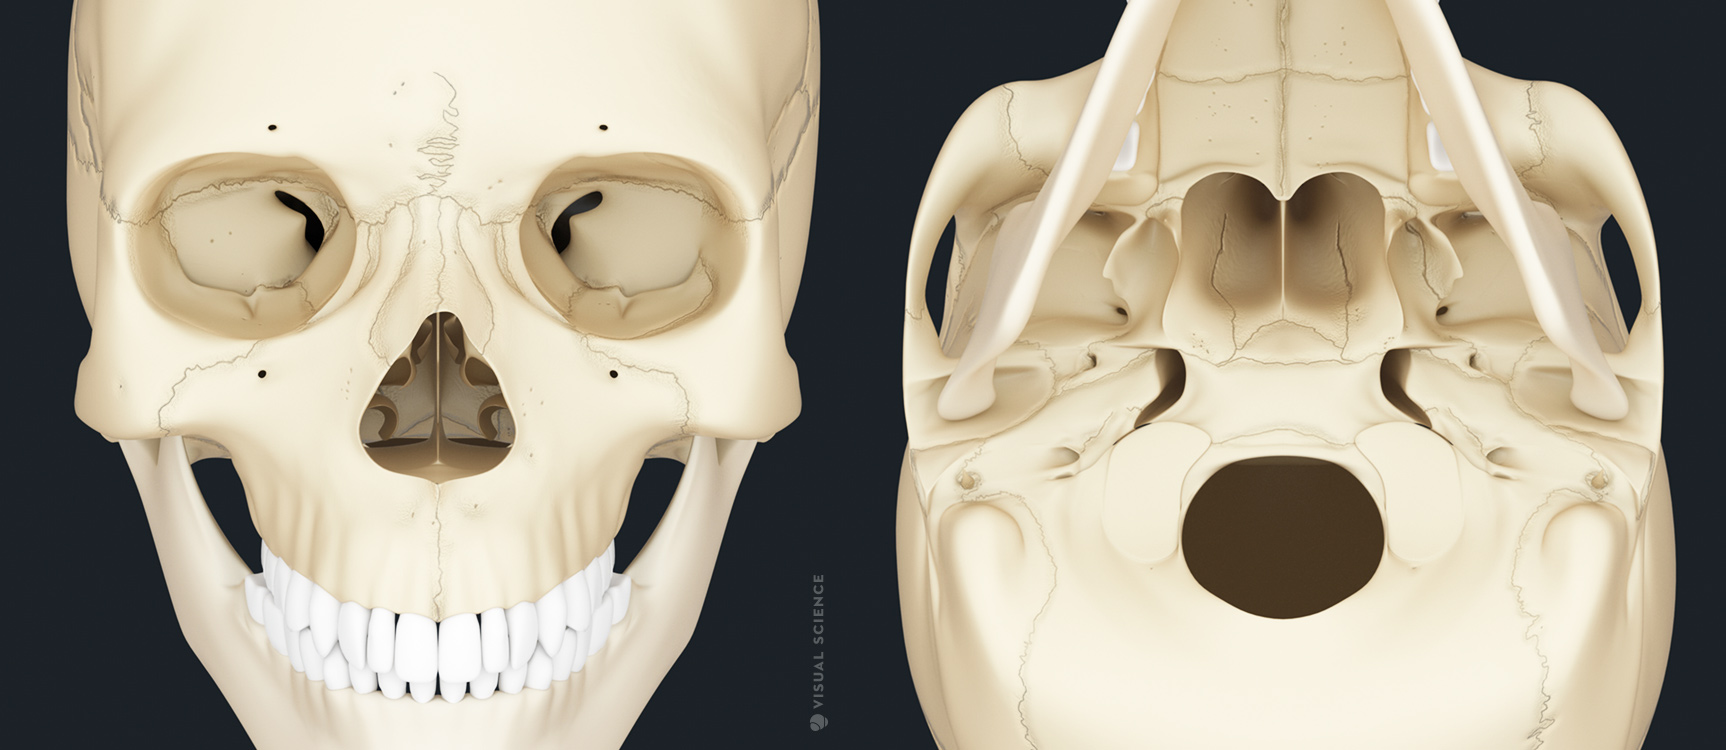 3D model of the human skull - medical illustration